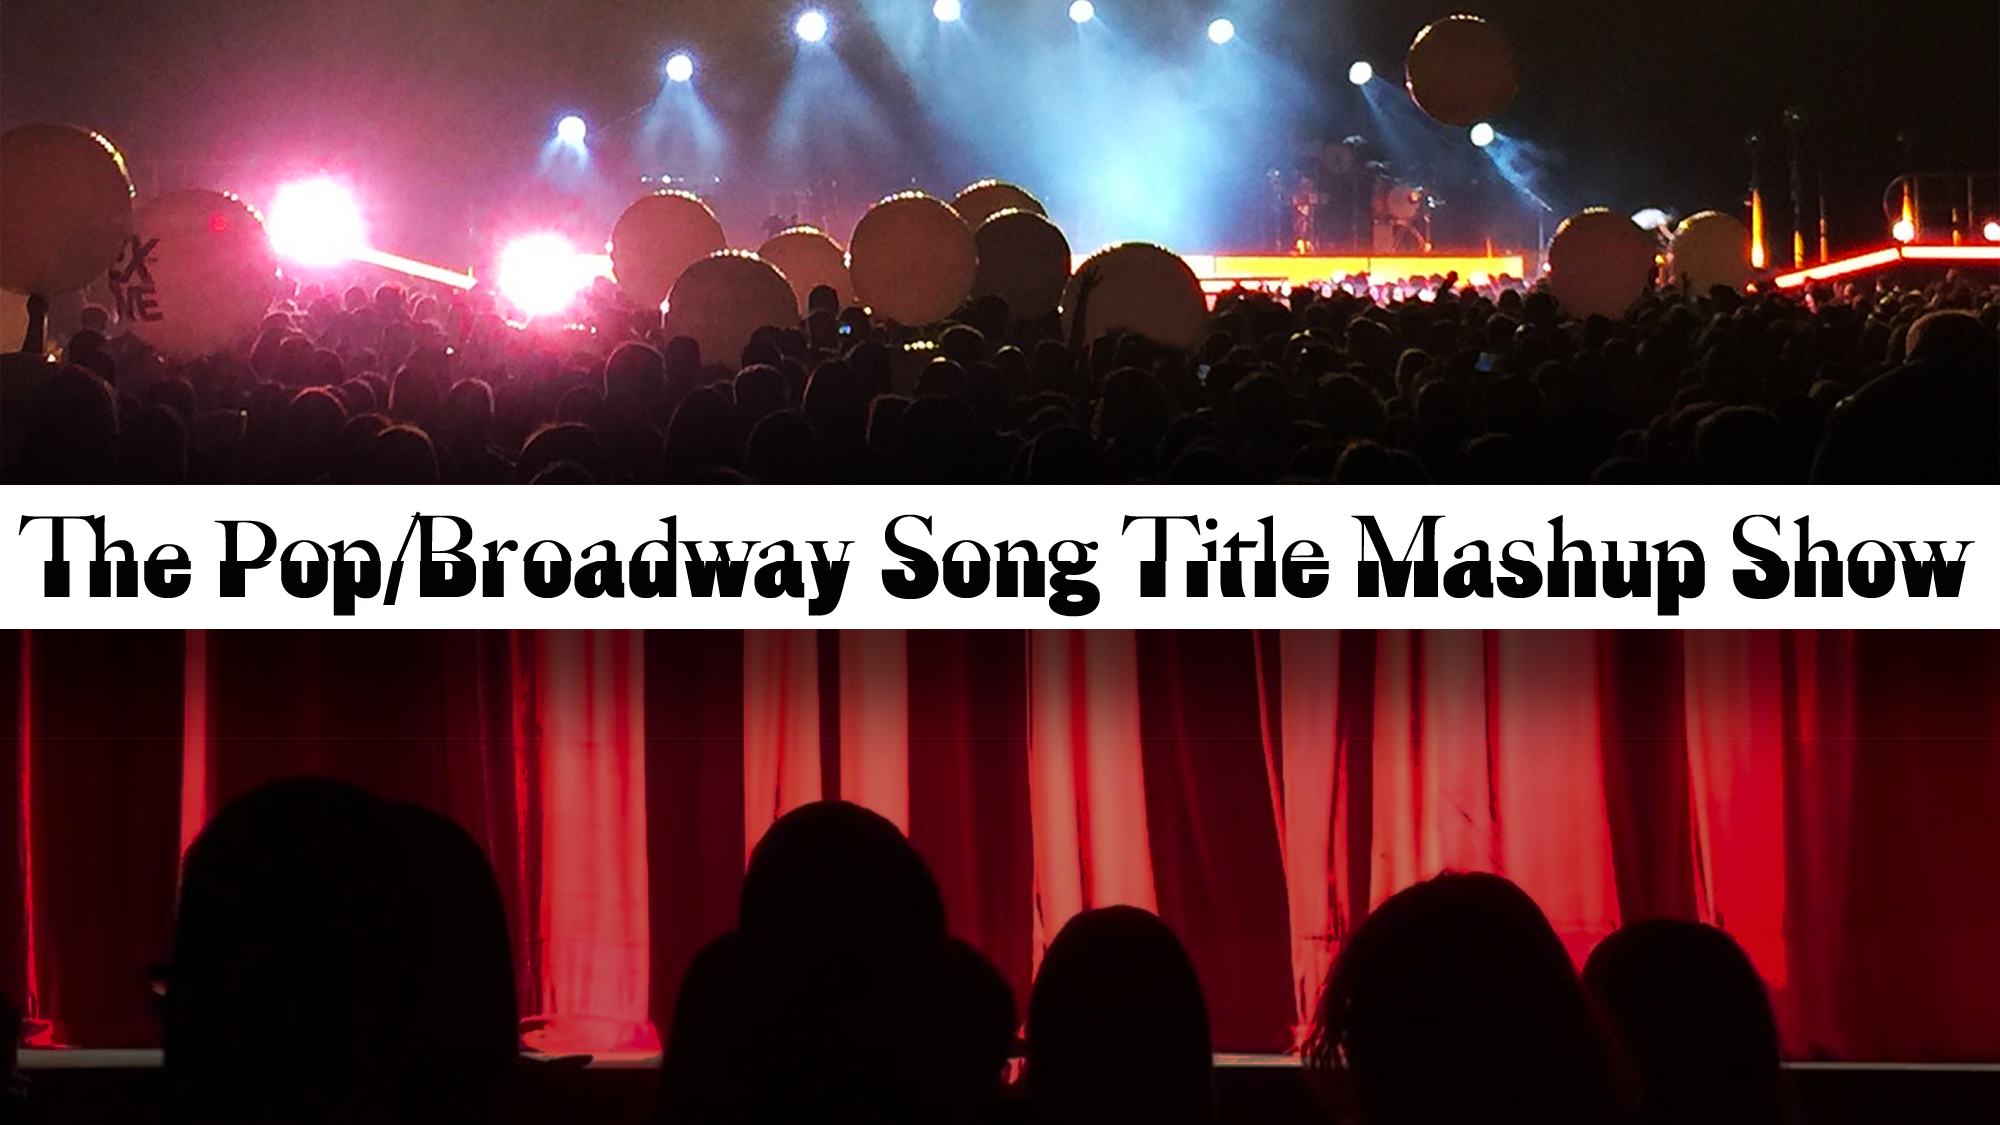 The Pop/Broadway Song Title Mashup Show!